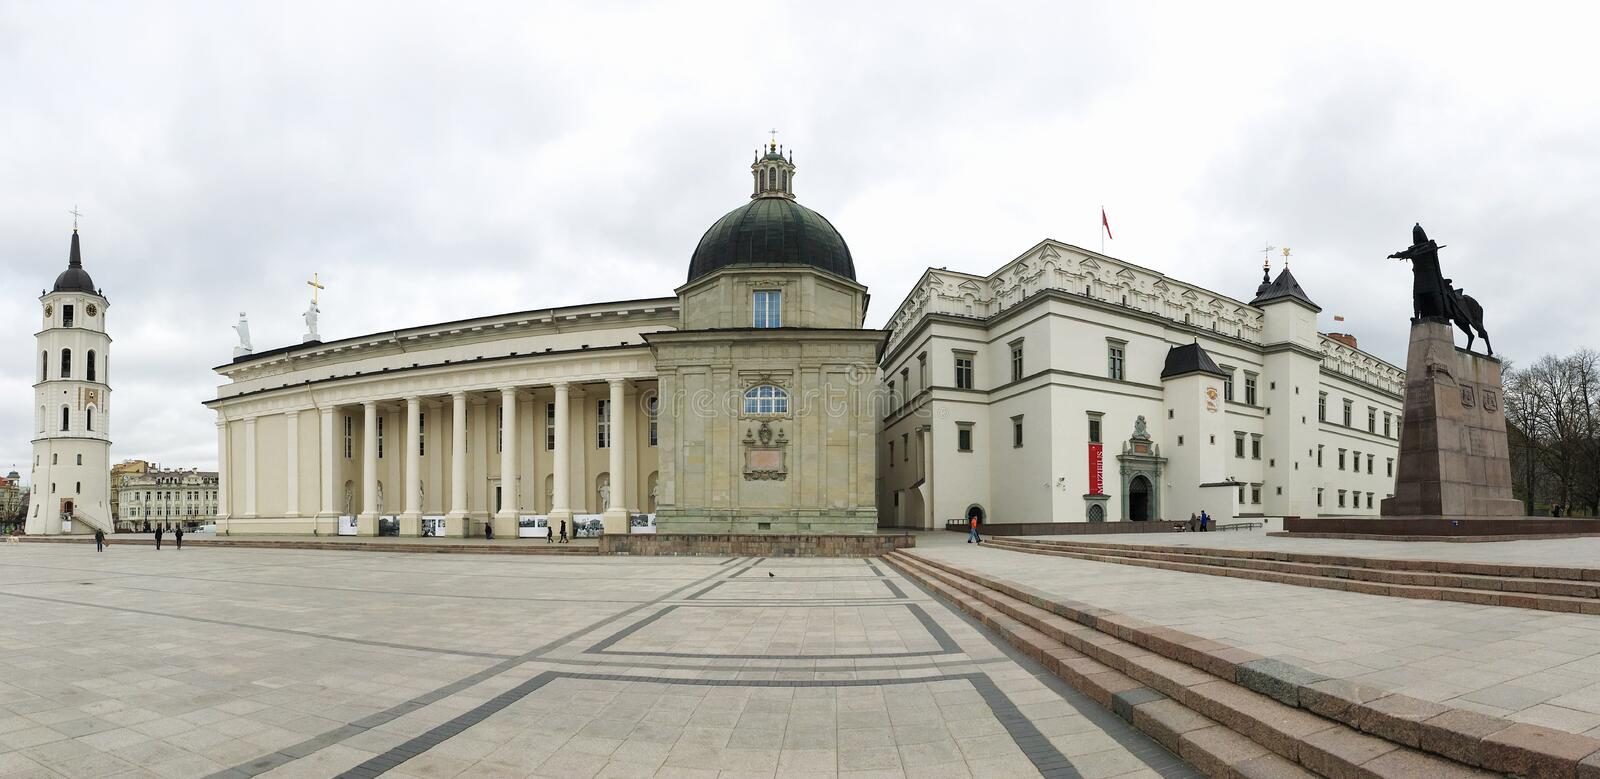 Vilnus/Lithuania/04.04.2019/ Palace of the Grand Dukes of Lithuania, Vilnus, Lithuania, wide panorama royalty free stock photography